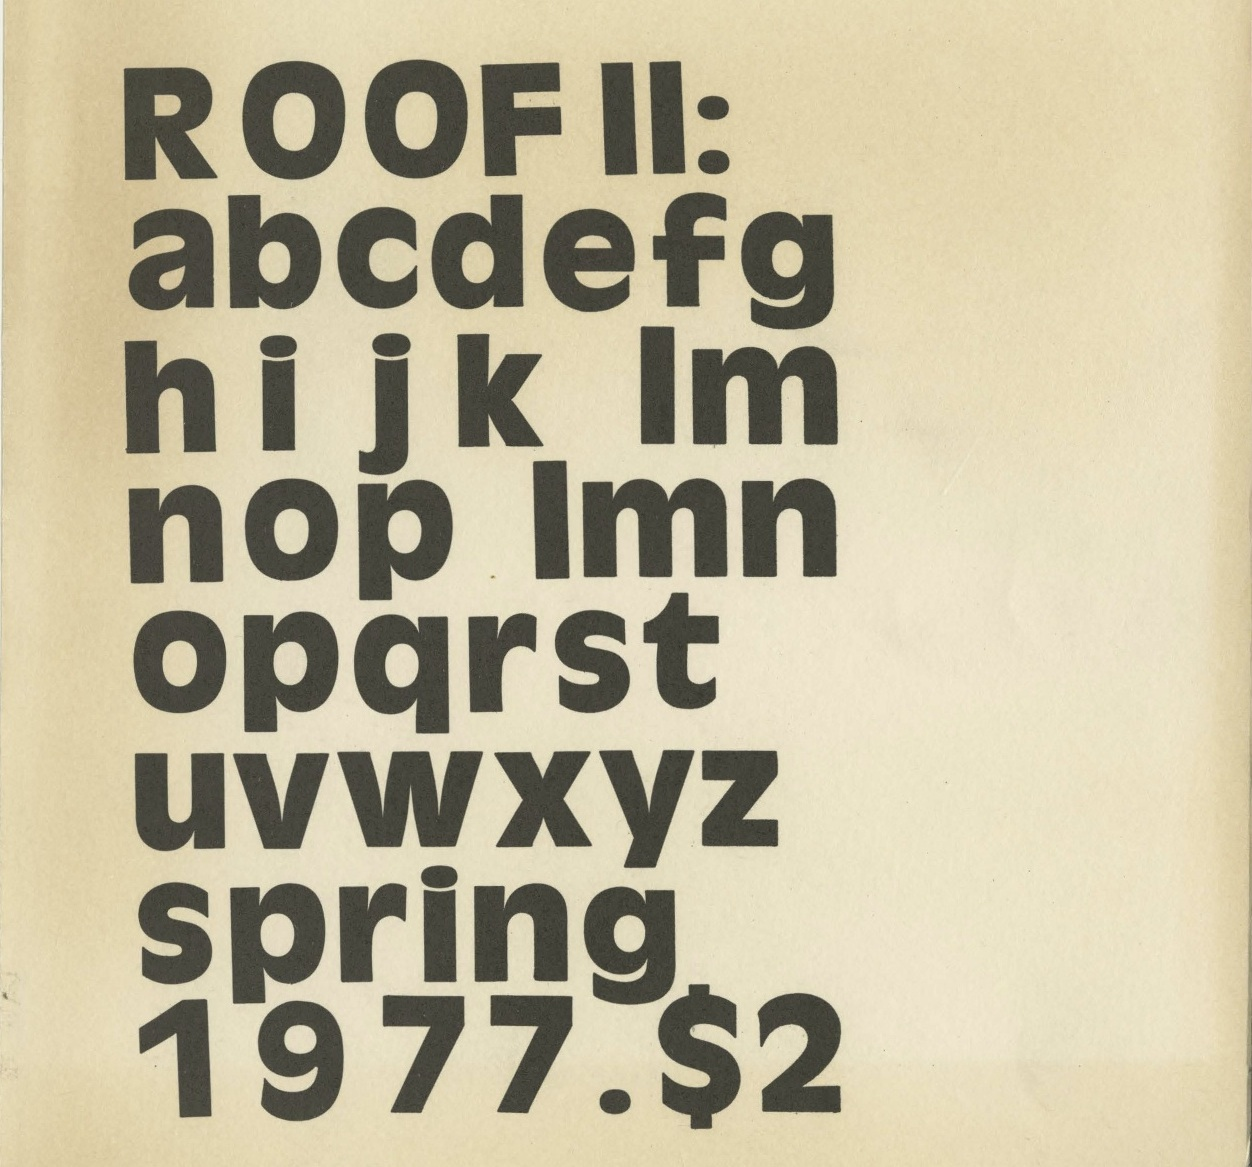 from Roof, No. II, Spring 1977